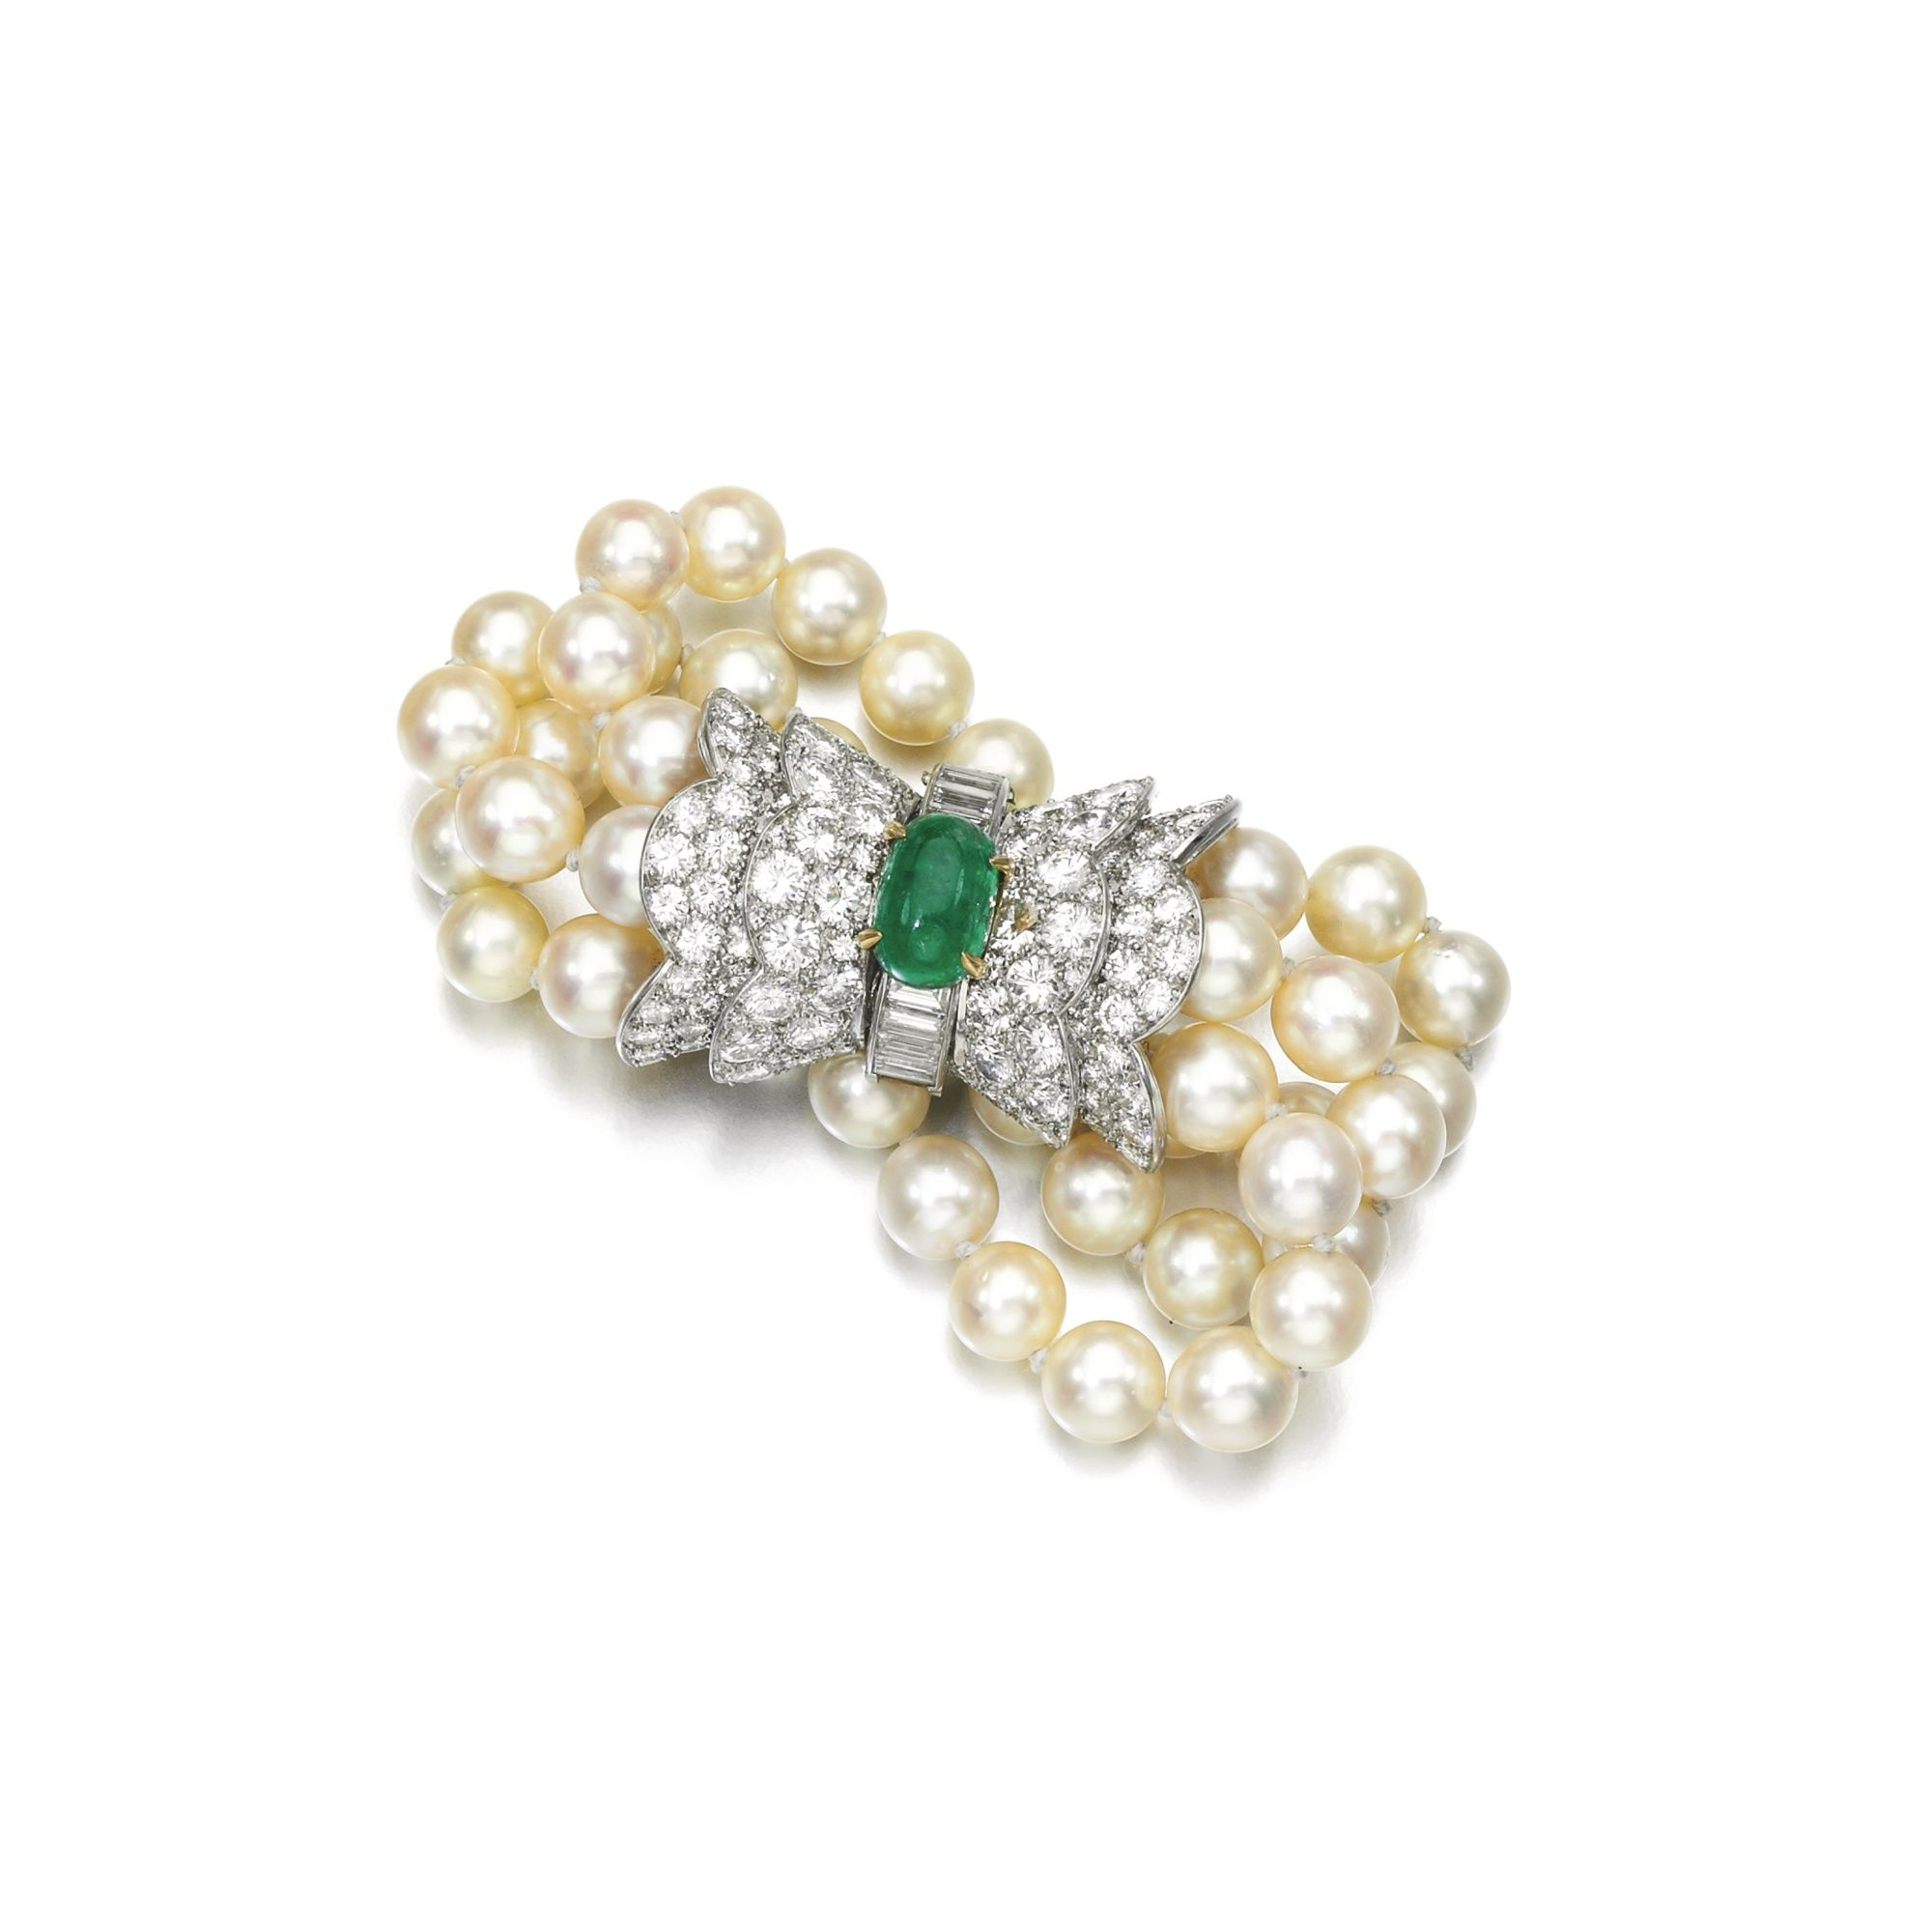 vendor bracelets cf products oliver and diamond bracelet pearl jewellery miscellaneous type